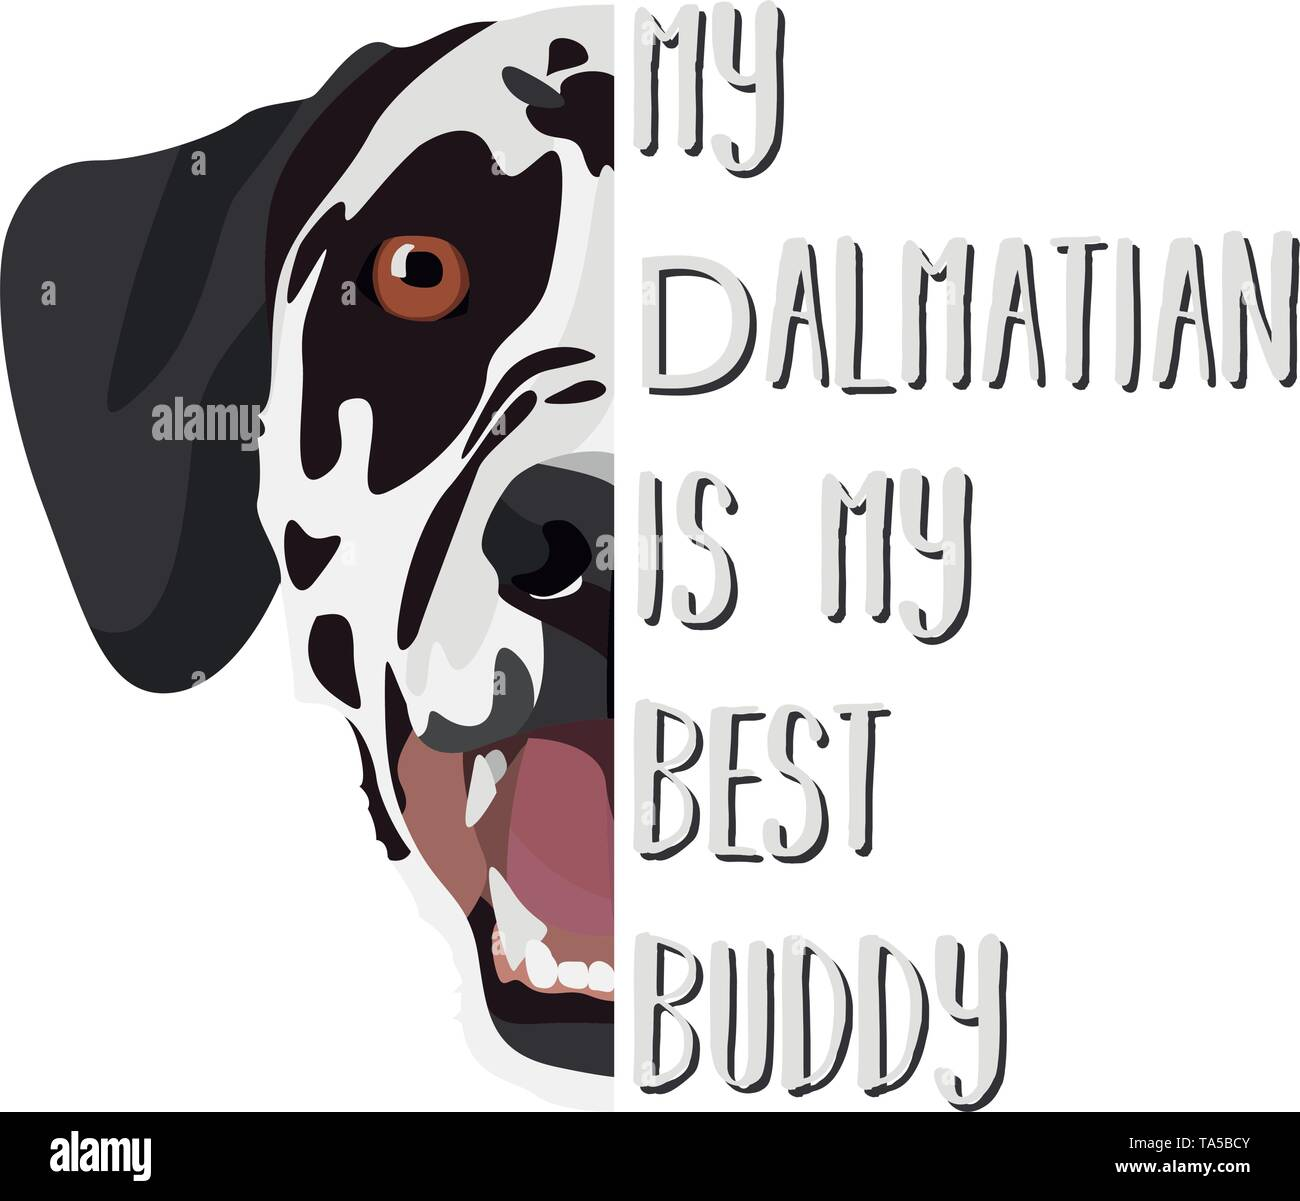 Illustration Dog Dalmatian - My Dalmatian is my best friend. Puppy dog eyes, wagging tail, smiling, barking. Perfect for dog lovers and dog owners. - Stock Vector